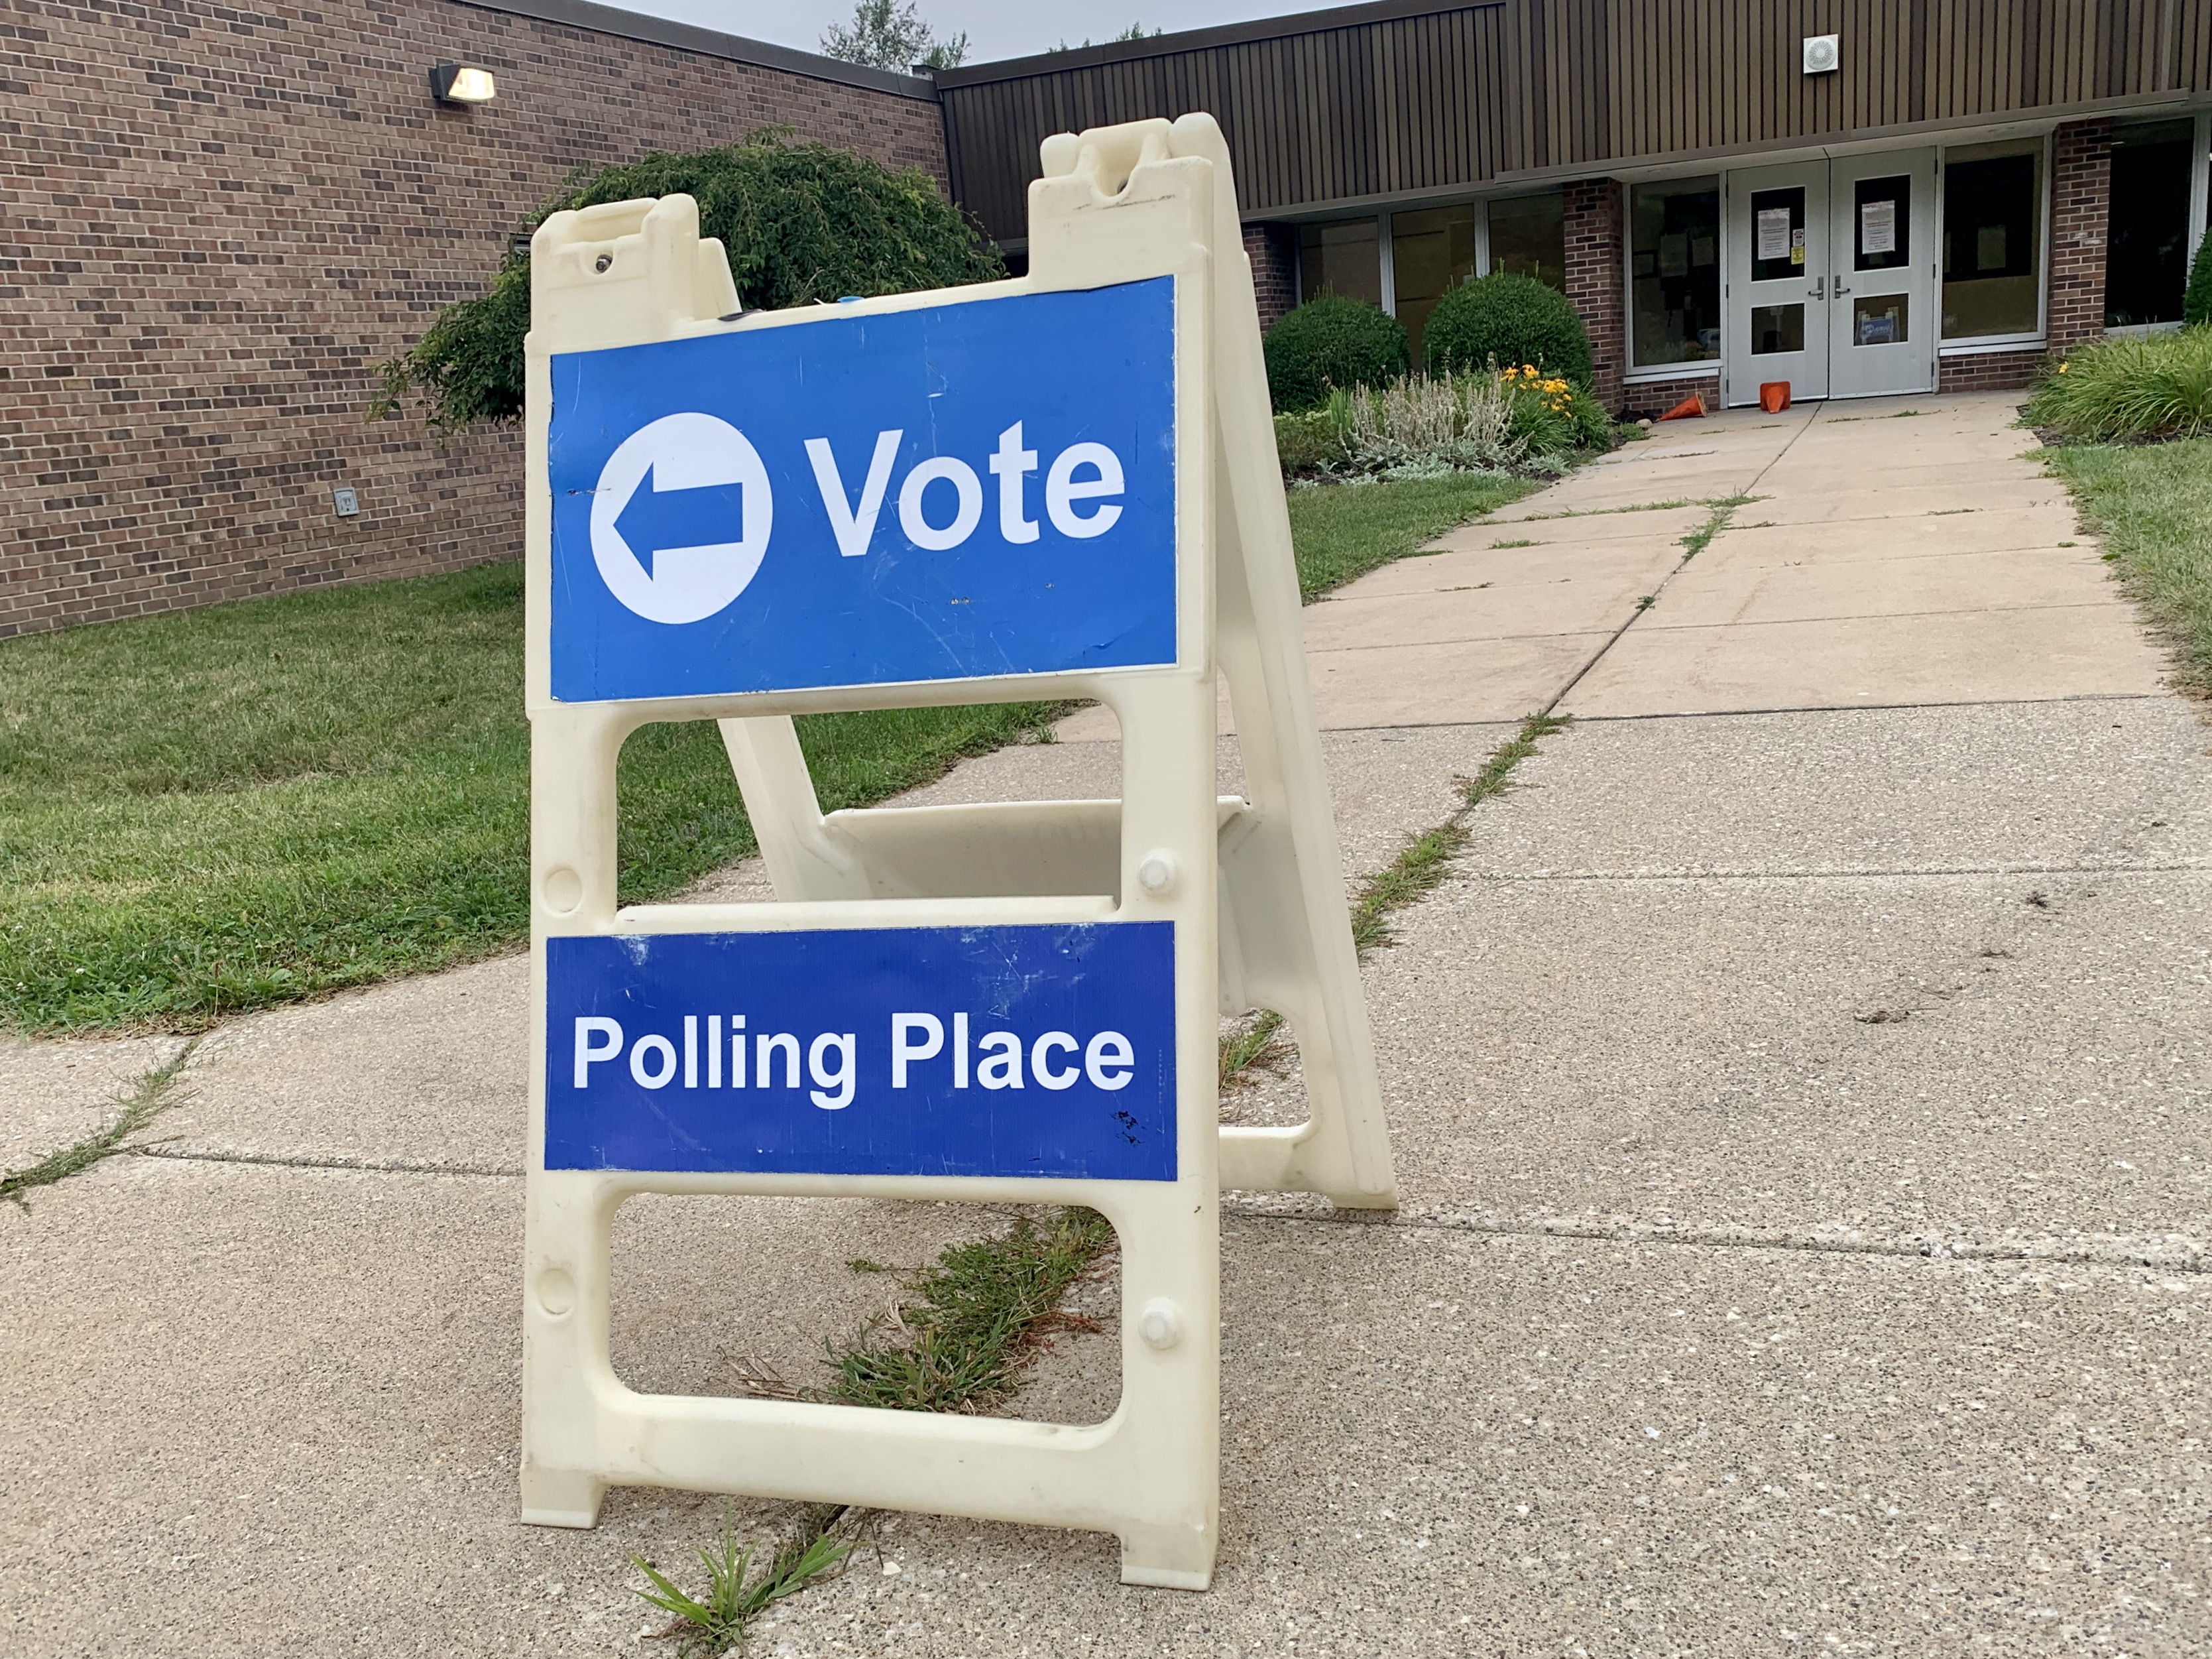 Polling places, with reminders to maintain social distancing because of the COVID-19 pandemic, opened across Michigan at 7 a.m. Tuesday for the state's primary election. (WWMT/Hannah Knowles)